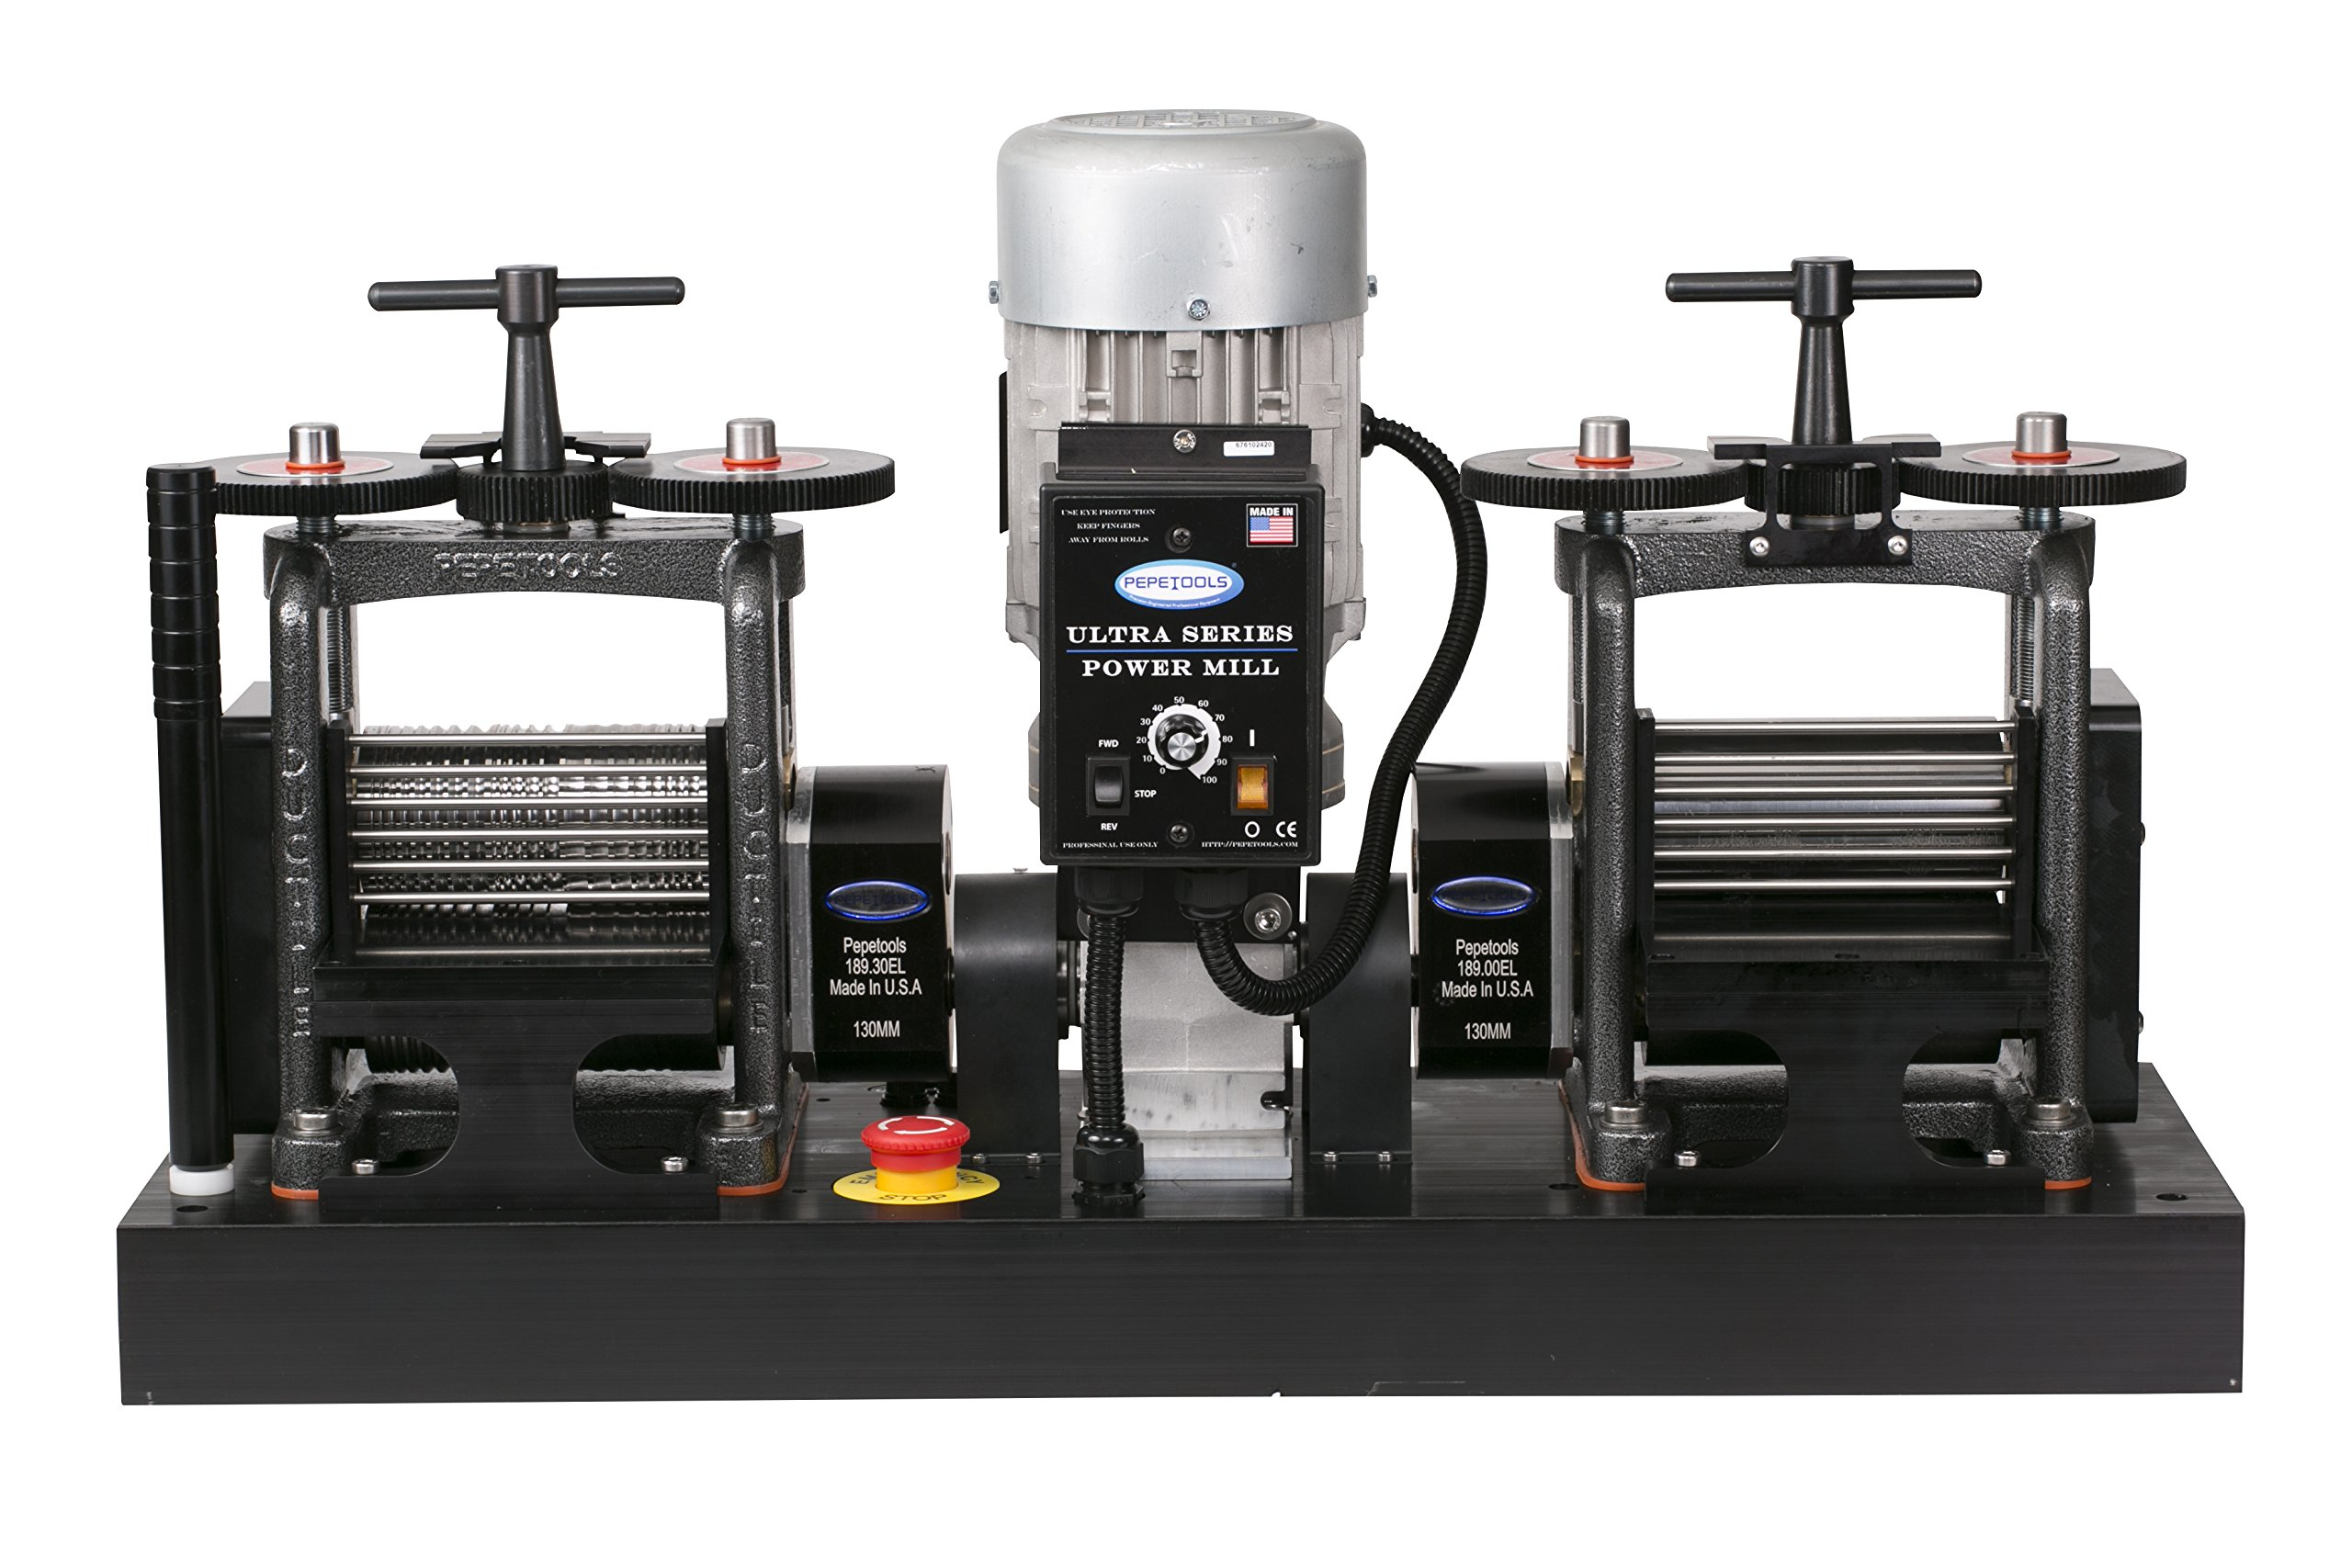 PepeTools Ultra Power Electric Double Rolling Mills Wire and Flat 130mm, MADE IN THE USA by Ultra Combo Wire Mill and Flat Mill